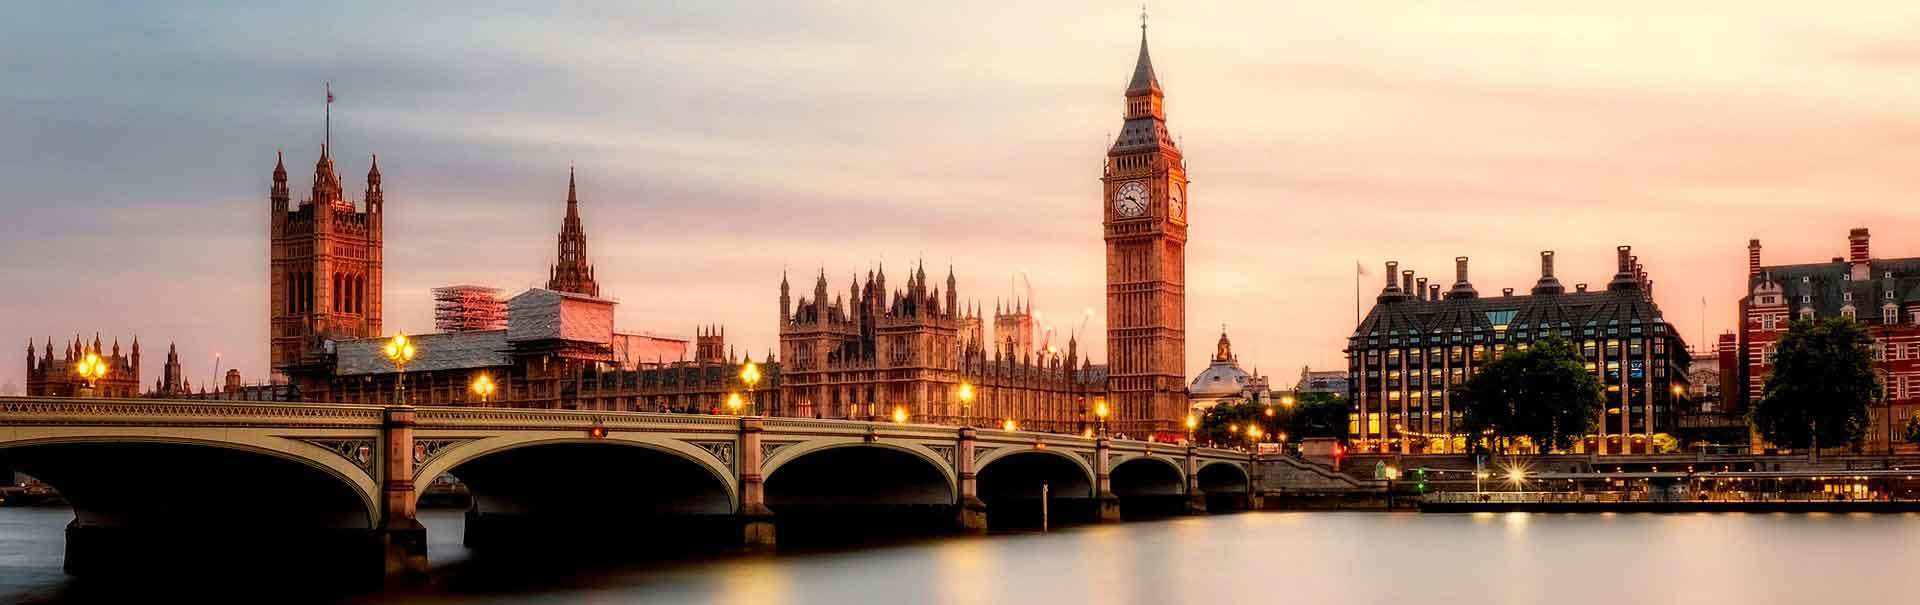 Skyline of Big Ben and Parliament, in London.